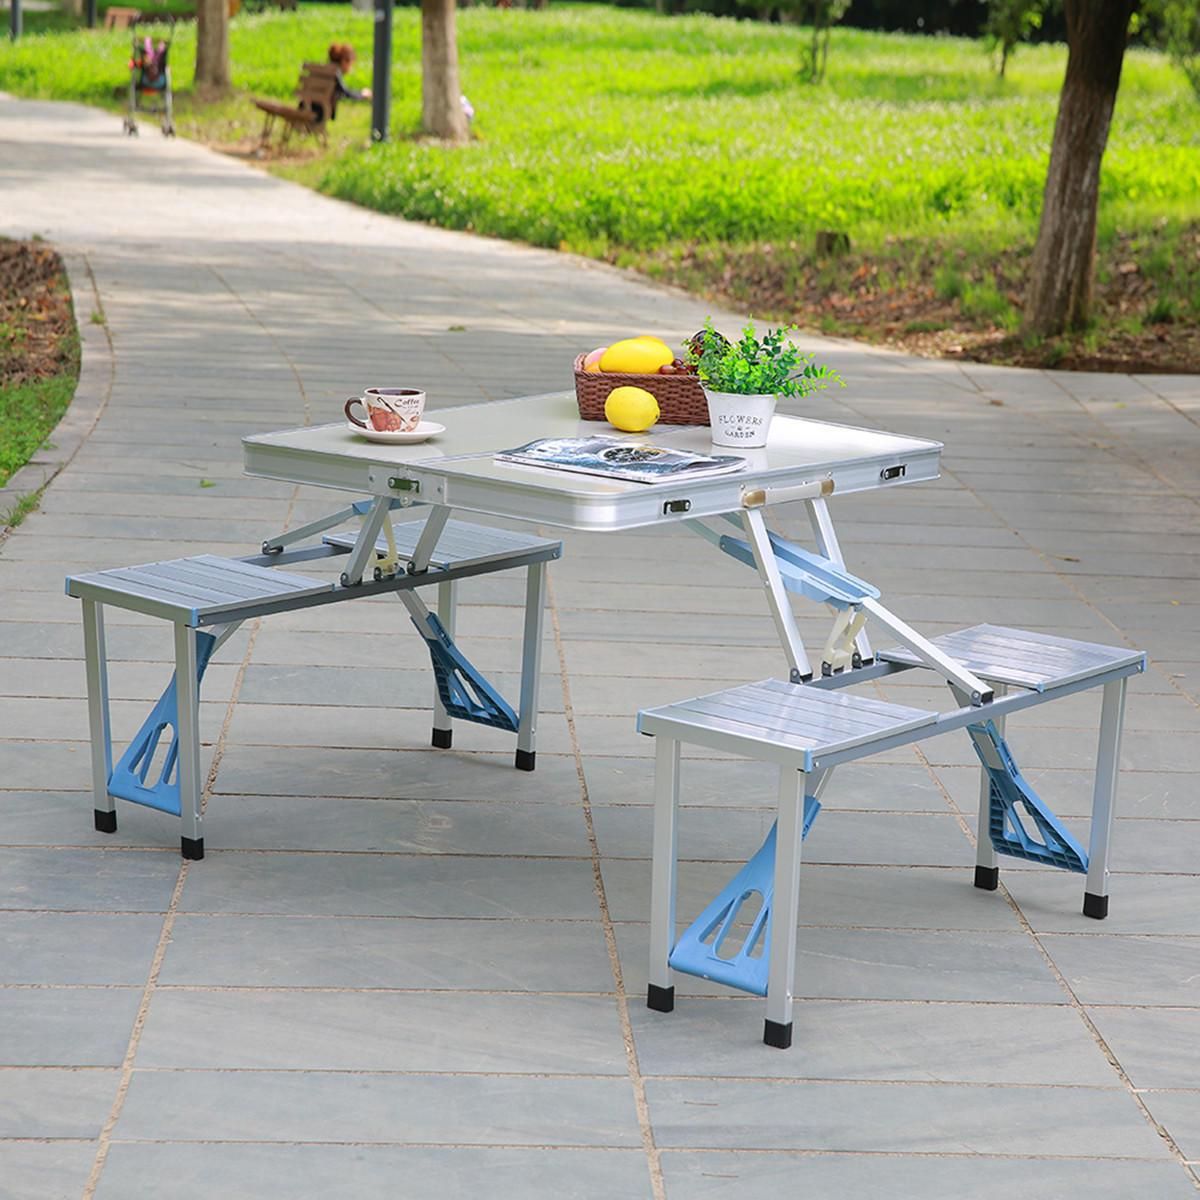 Table Valise + 4 Tabourets Mobilier D Extérieur Nouveau Style Portable En Alliage D Aluminium En Plein Air Portable Camping Pique Nique Barbecue Pliant Table Chaise Tabouret